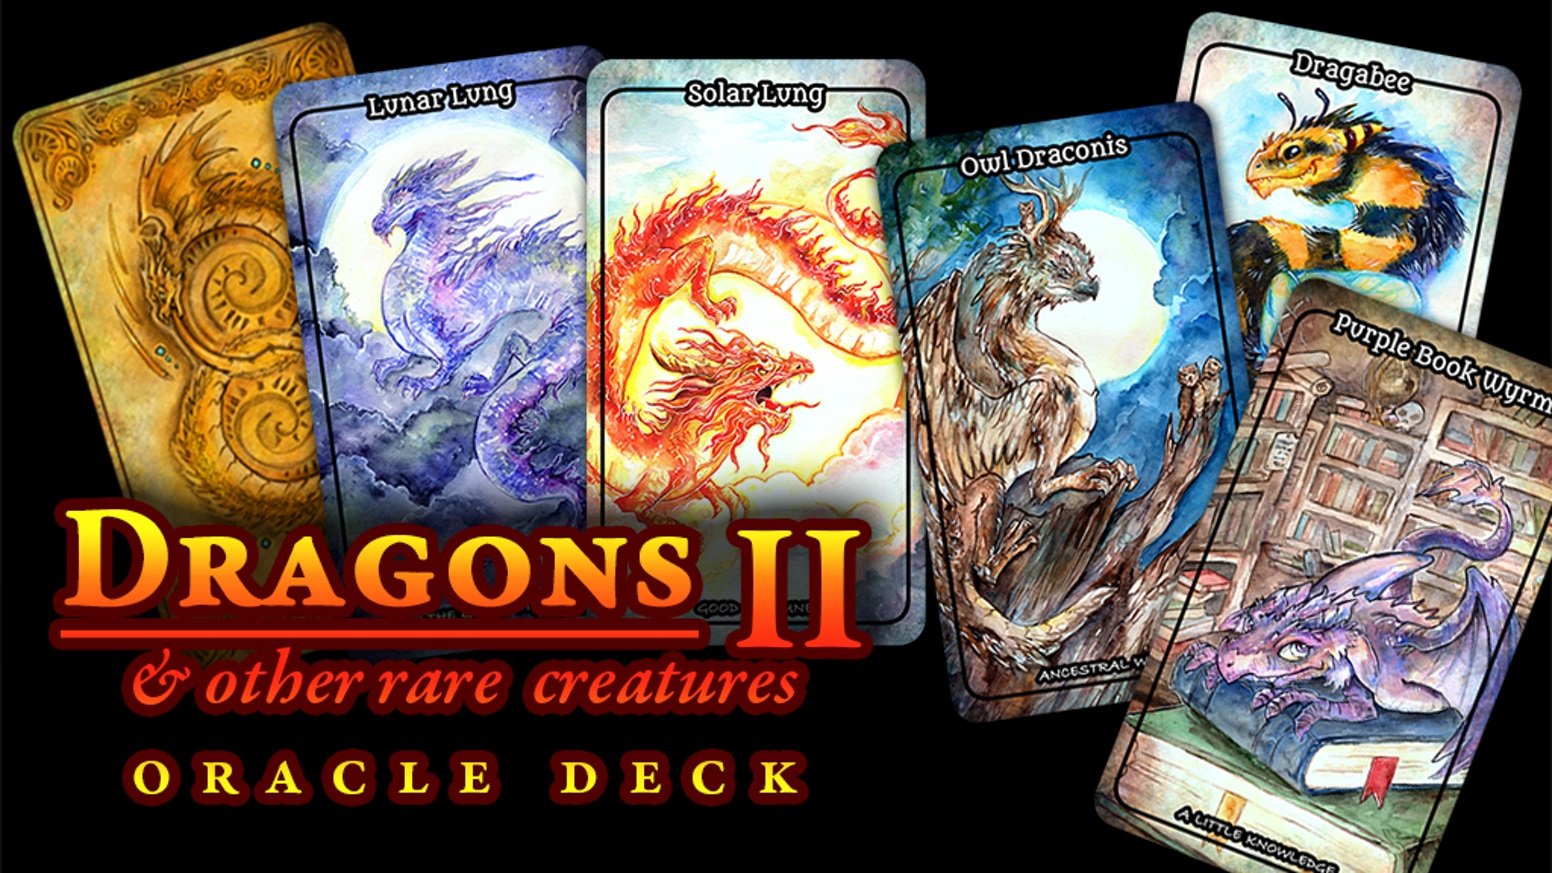 A new oracle deck featuring dragons and other fantastical creatures with collectible tin and book!